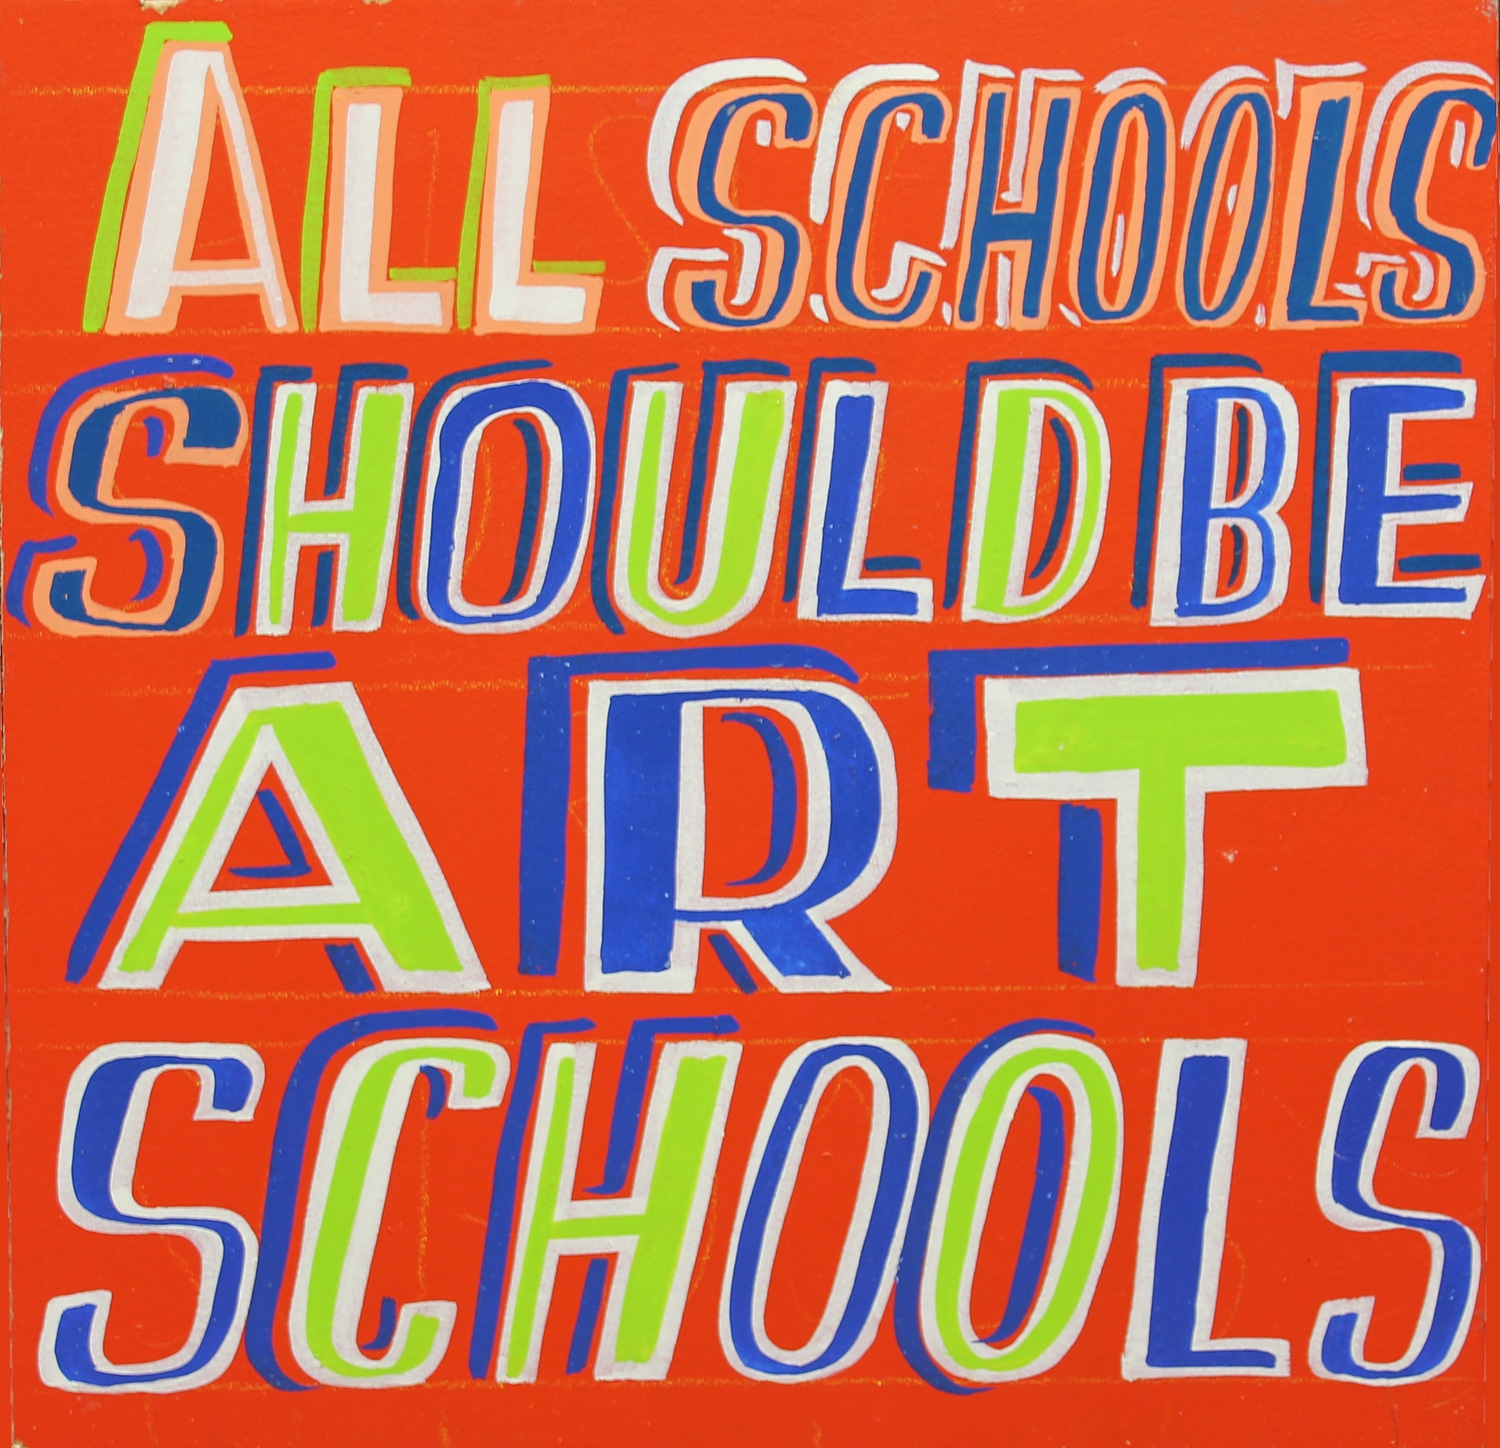 Should the arts be taught at schools?